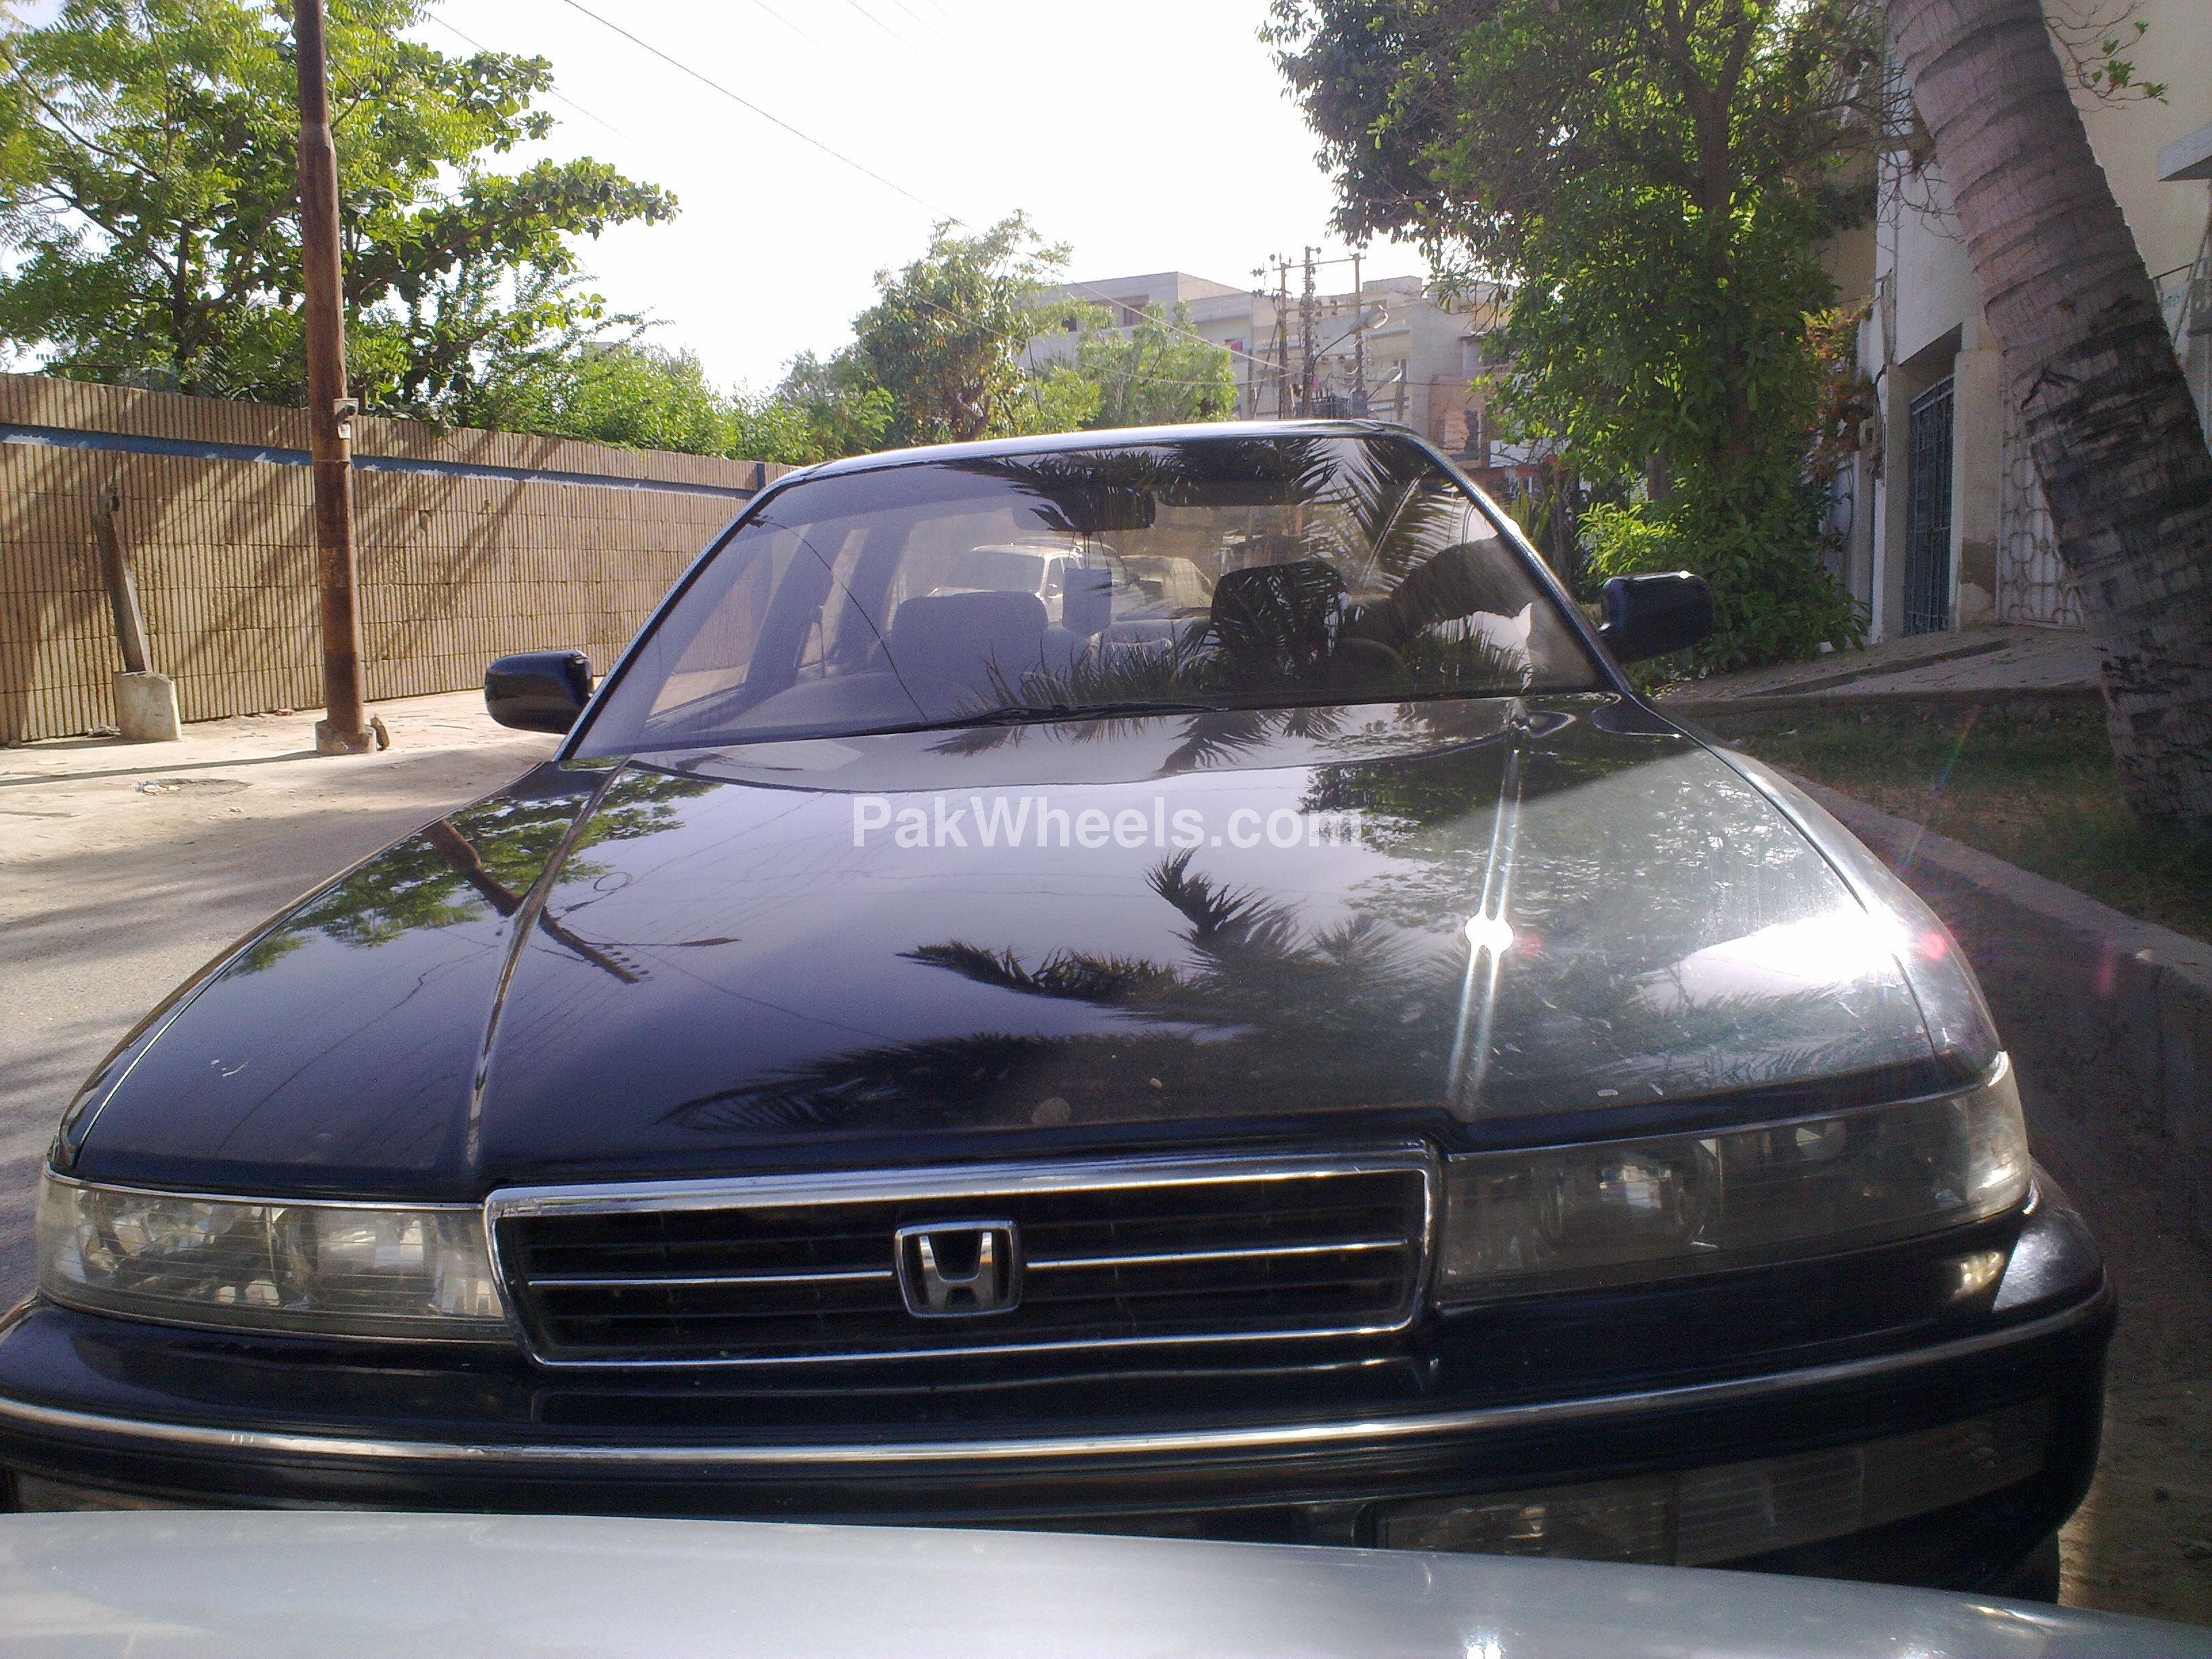 Honda Inspire 1992 For Sale In Karachi Pakwheels